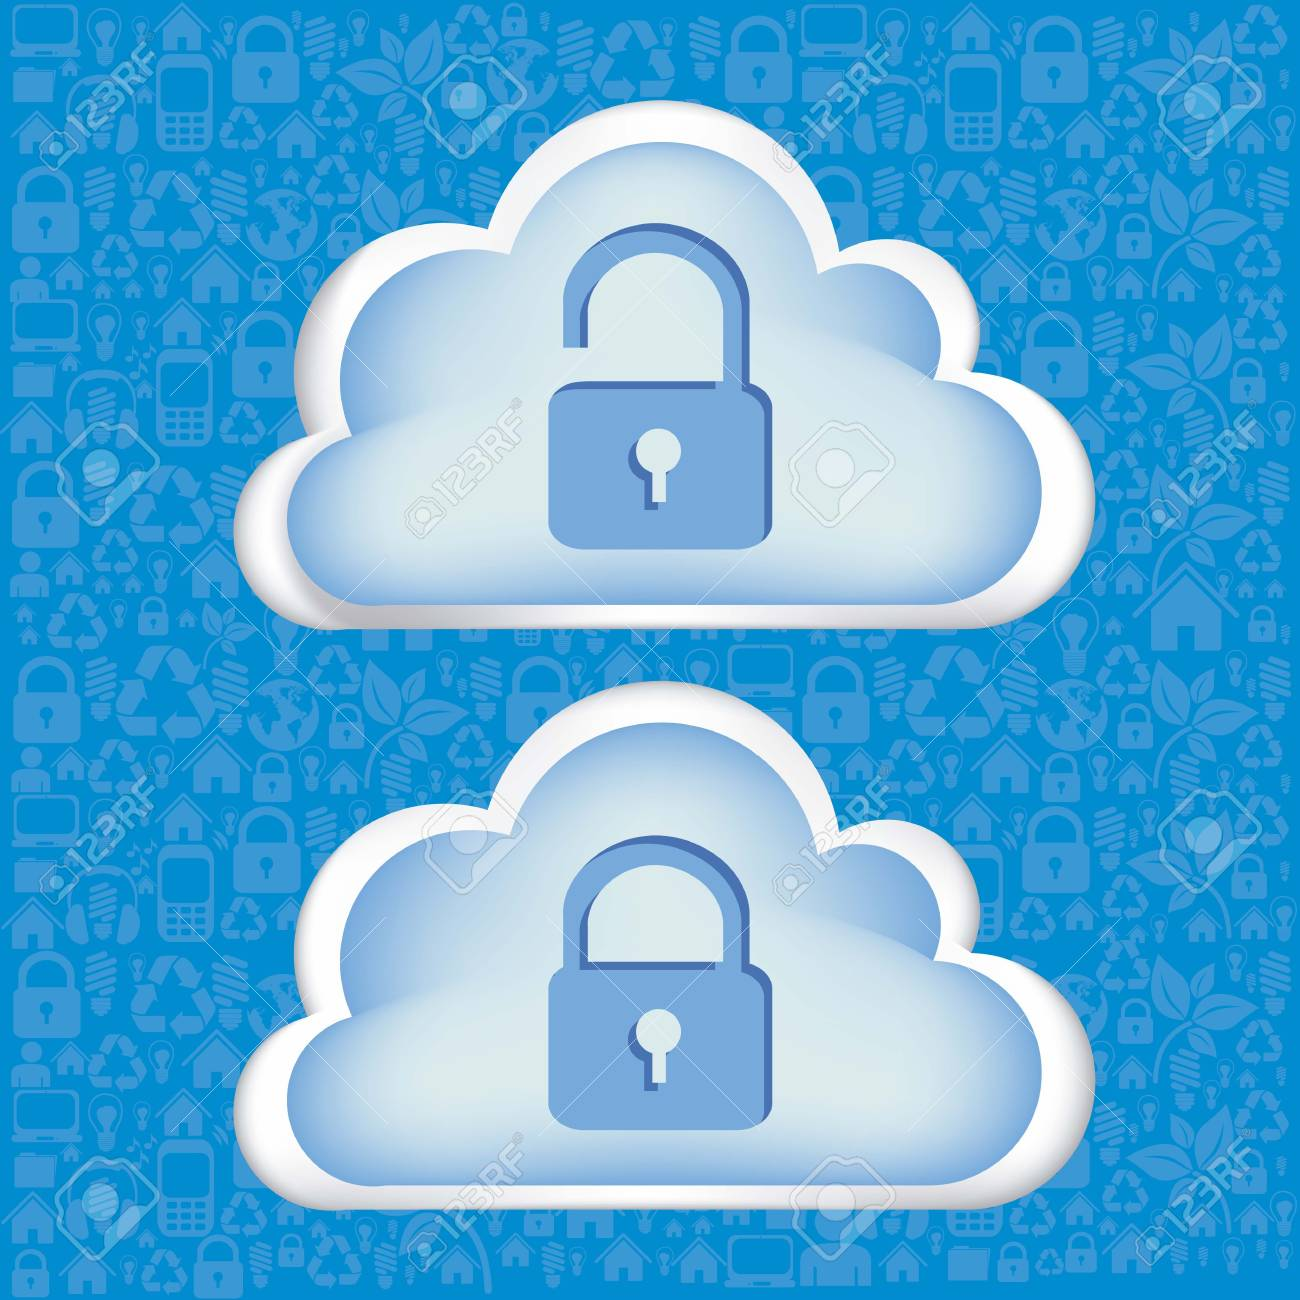 illustration of cloud technology locked, network security, vector illustration Stock Vector - 15564294